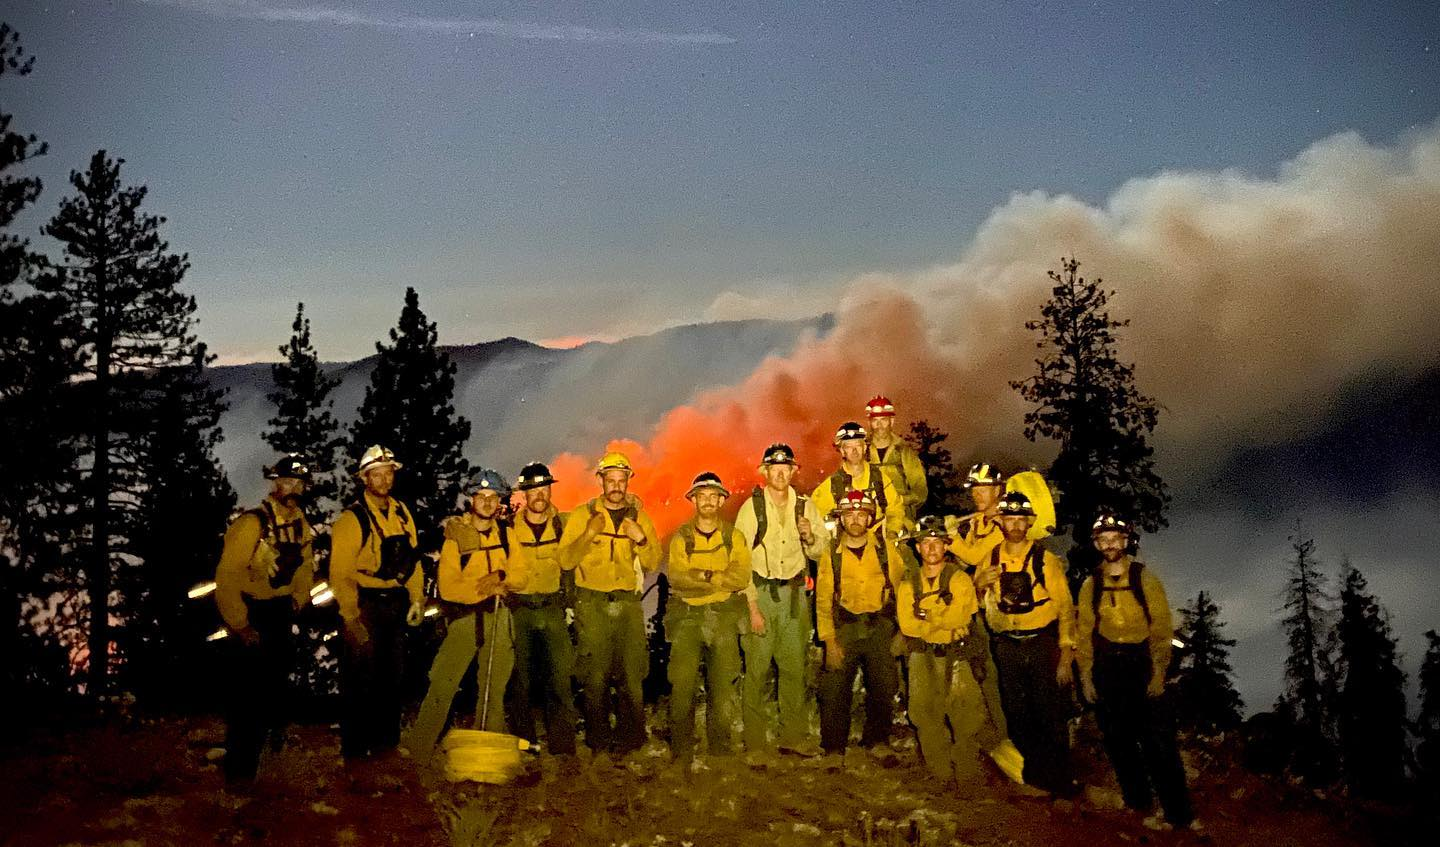 Task force standing in front of fire